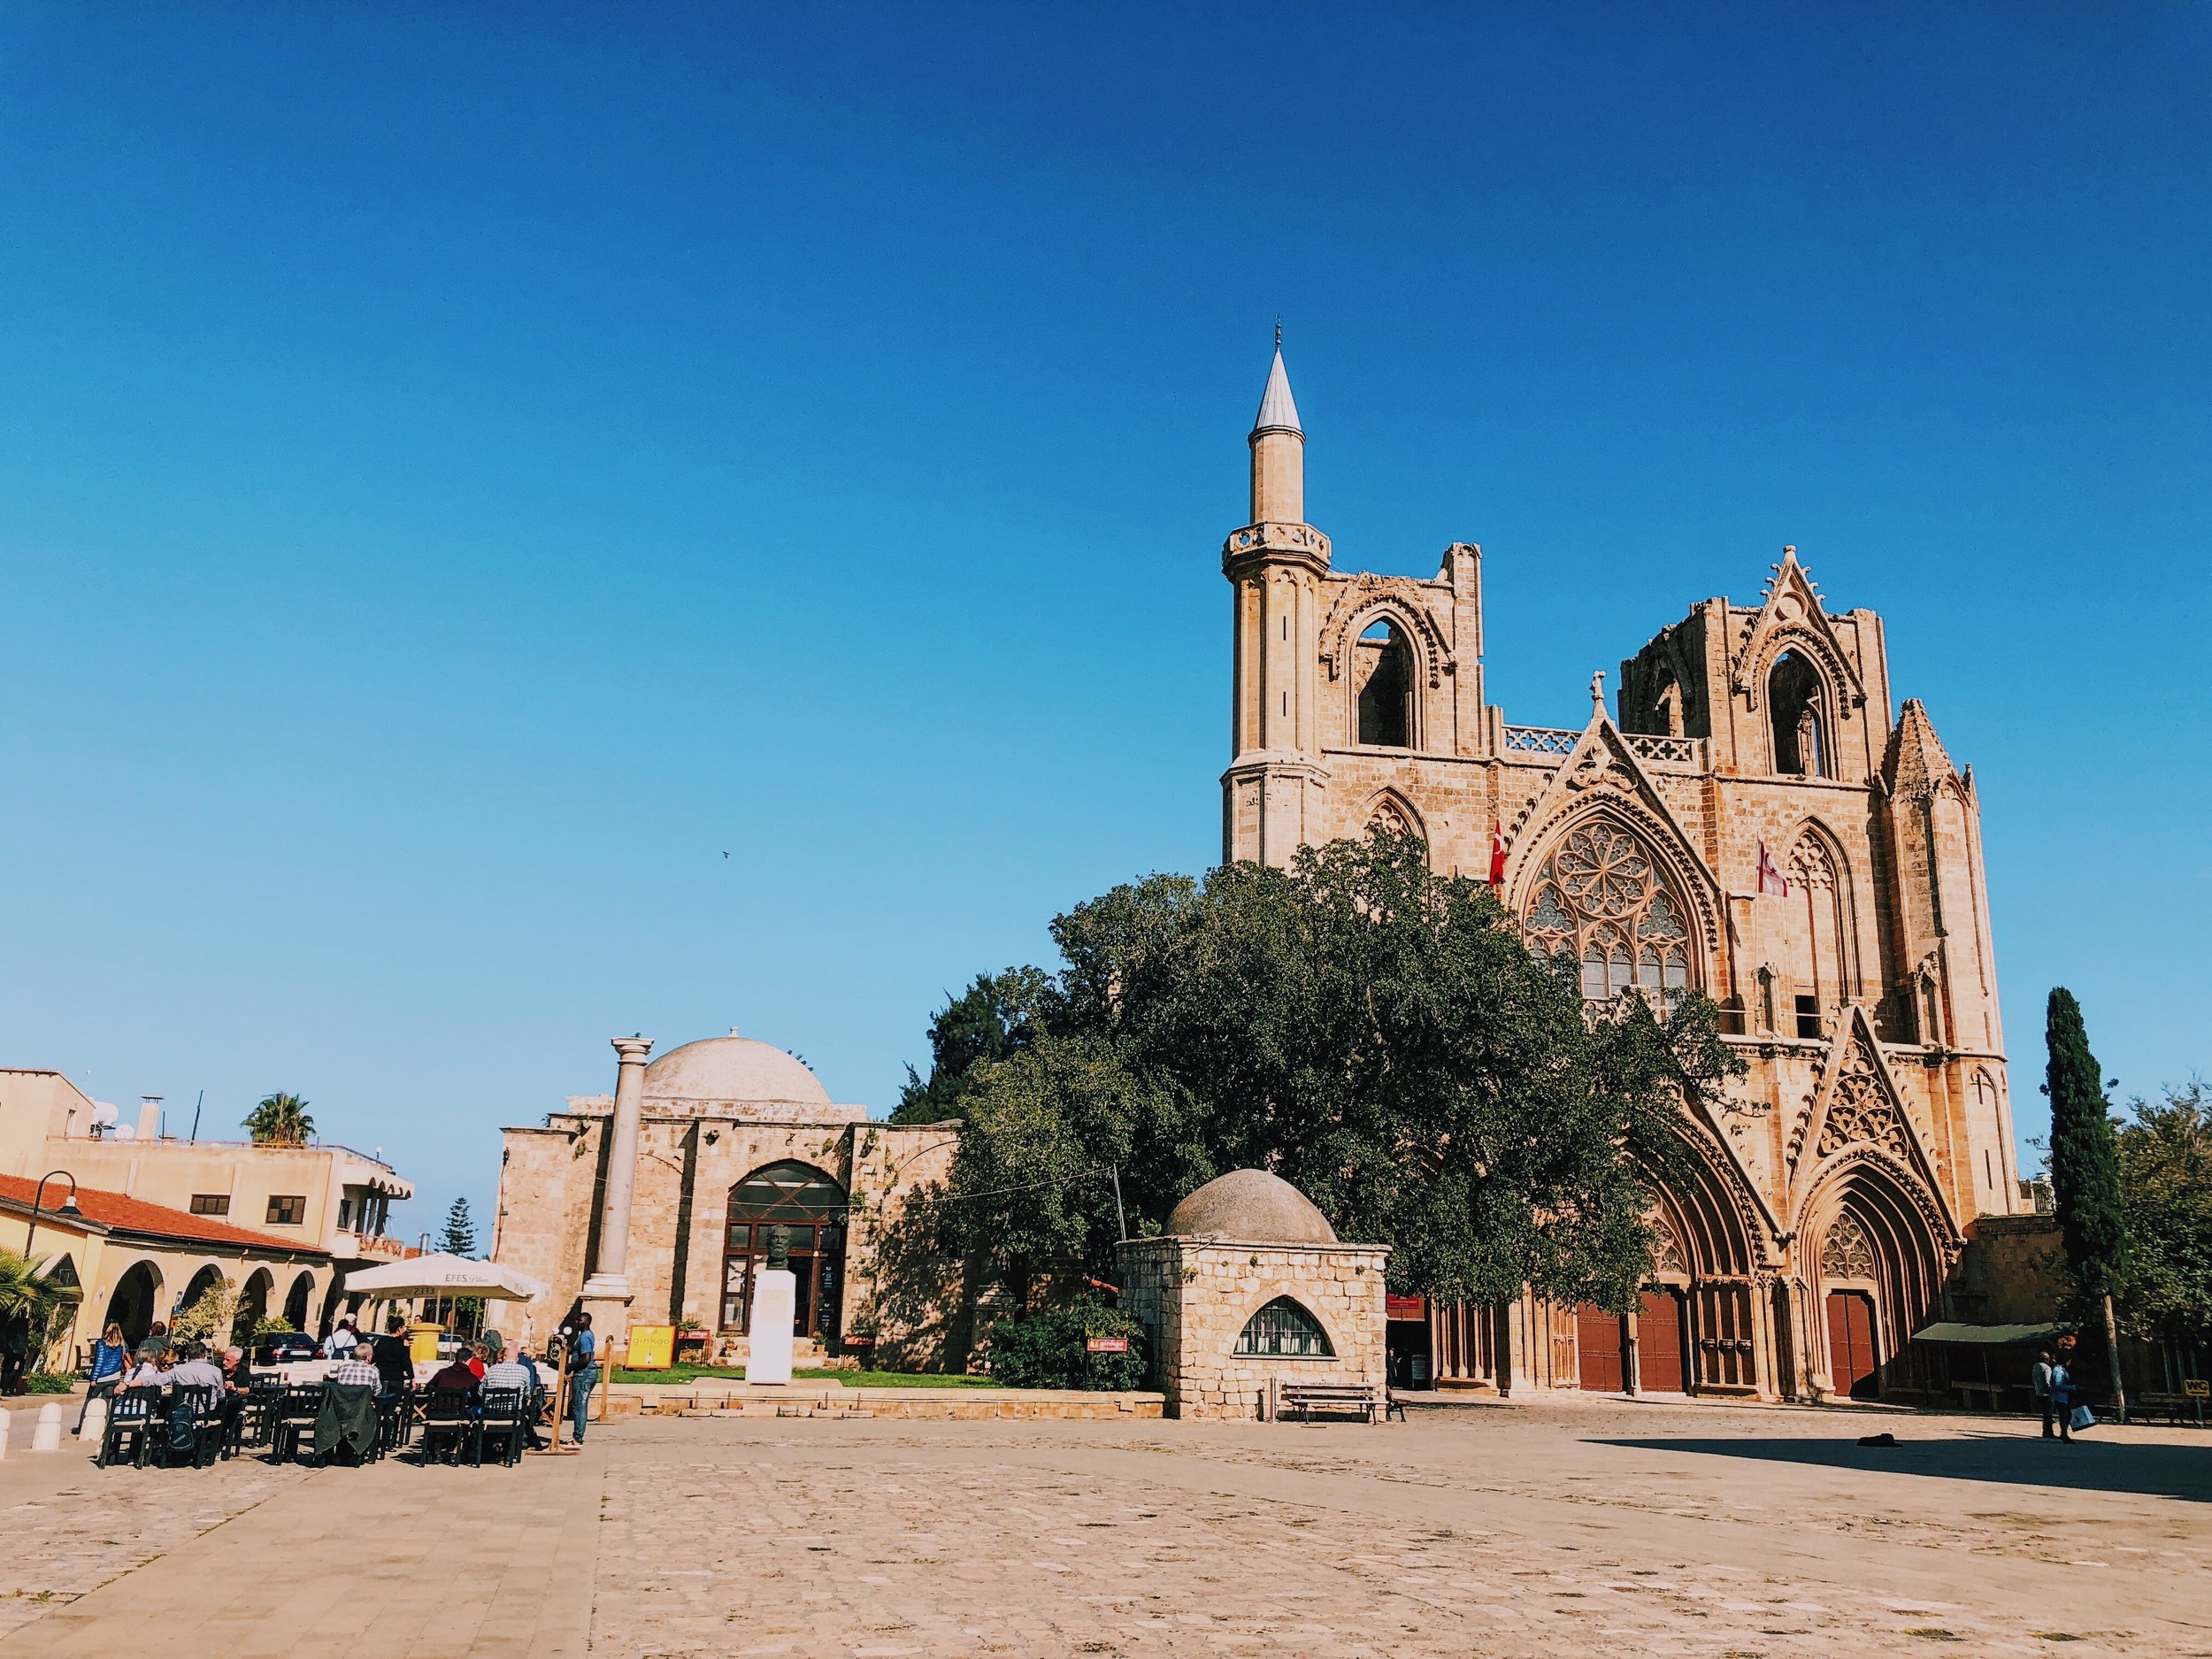 Famagusta's main square.